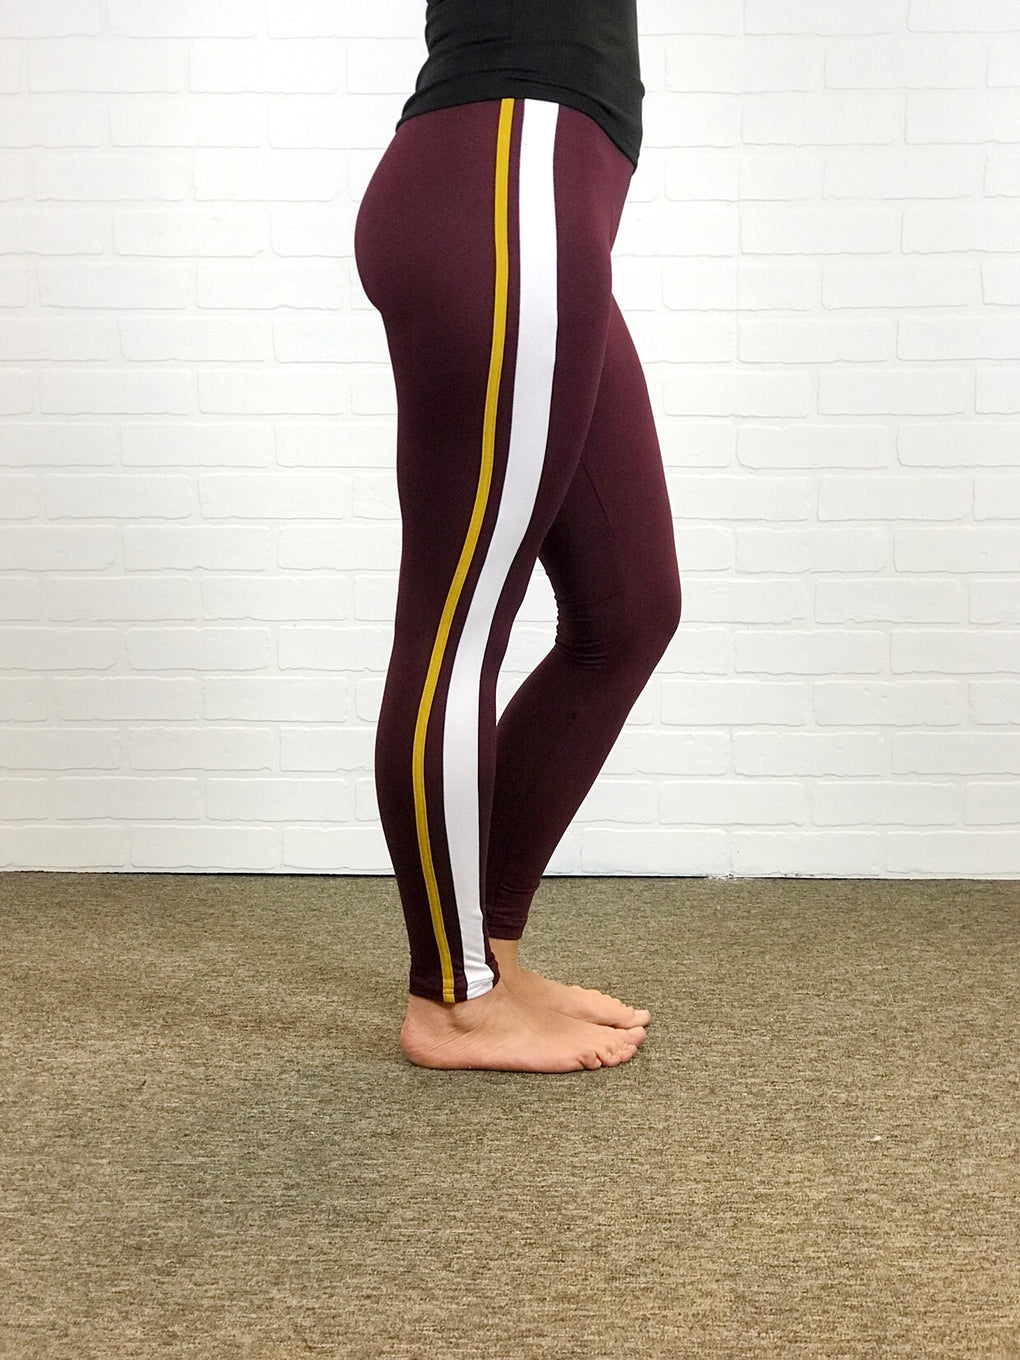 Leggings - Maroon with Gold & White Athletic Stripe